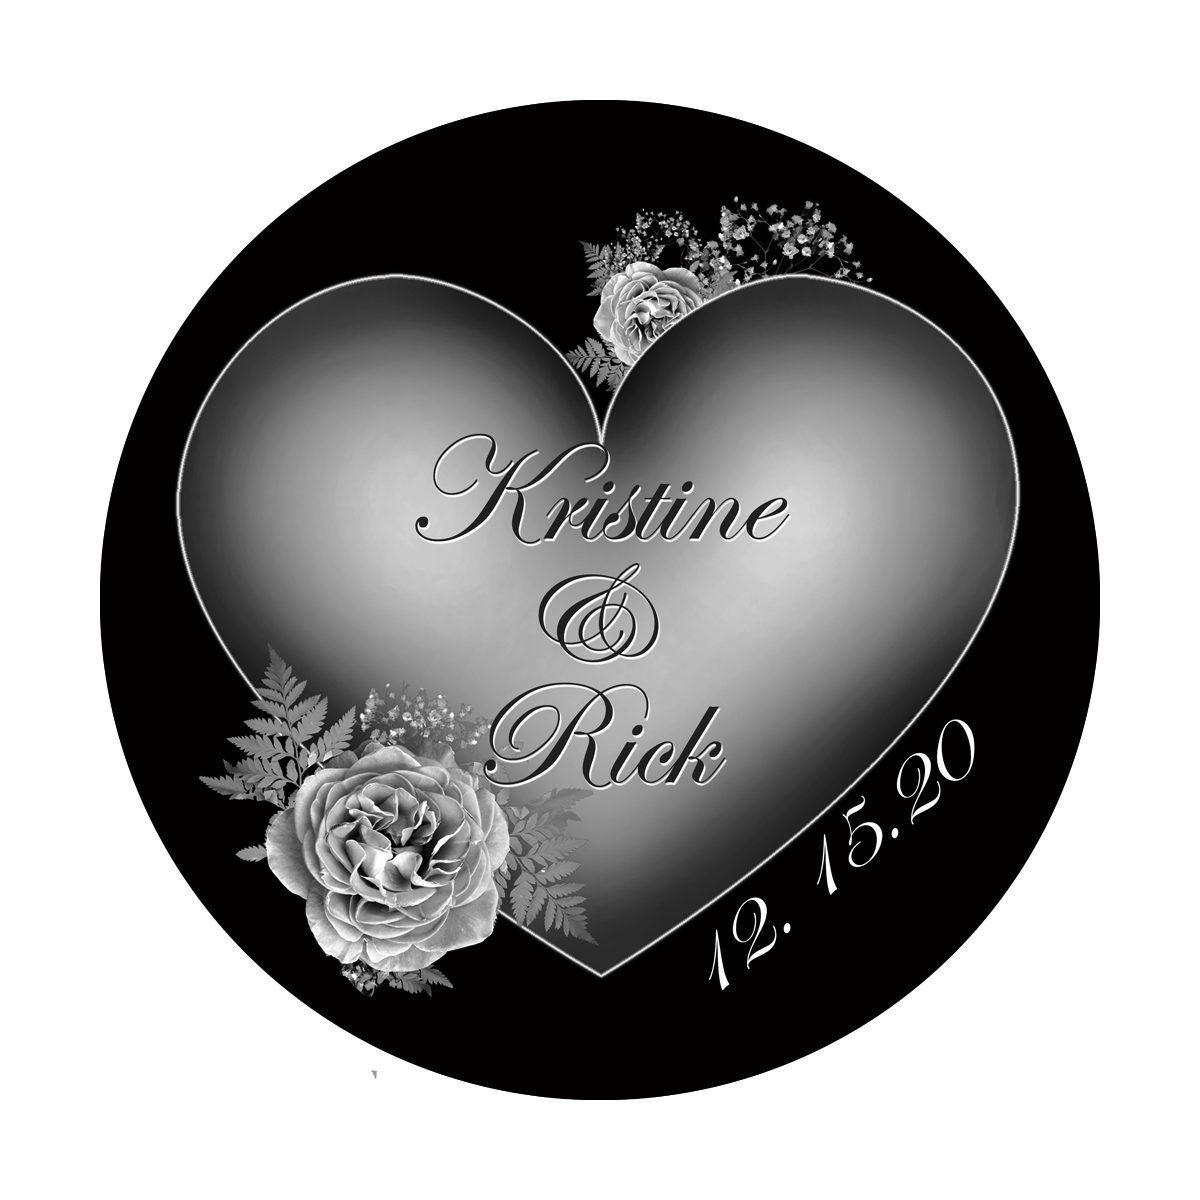 Custom wedding templates apollo design template name g1 shown with font edwardian script itc maxwellsz